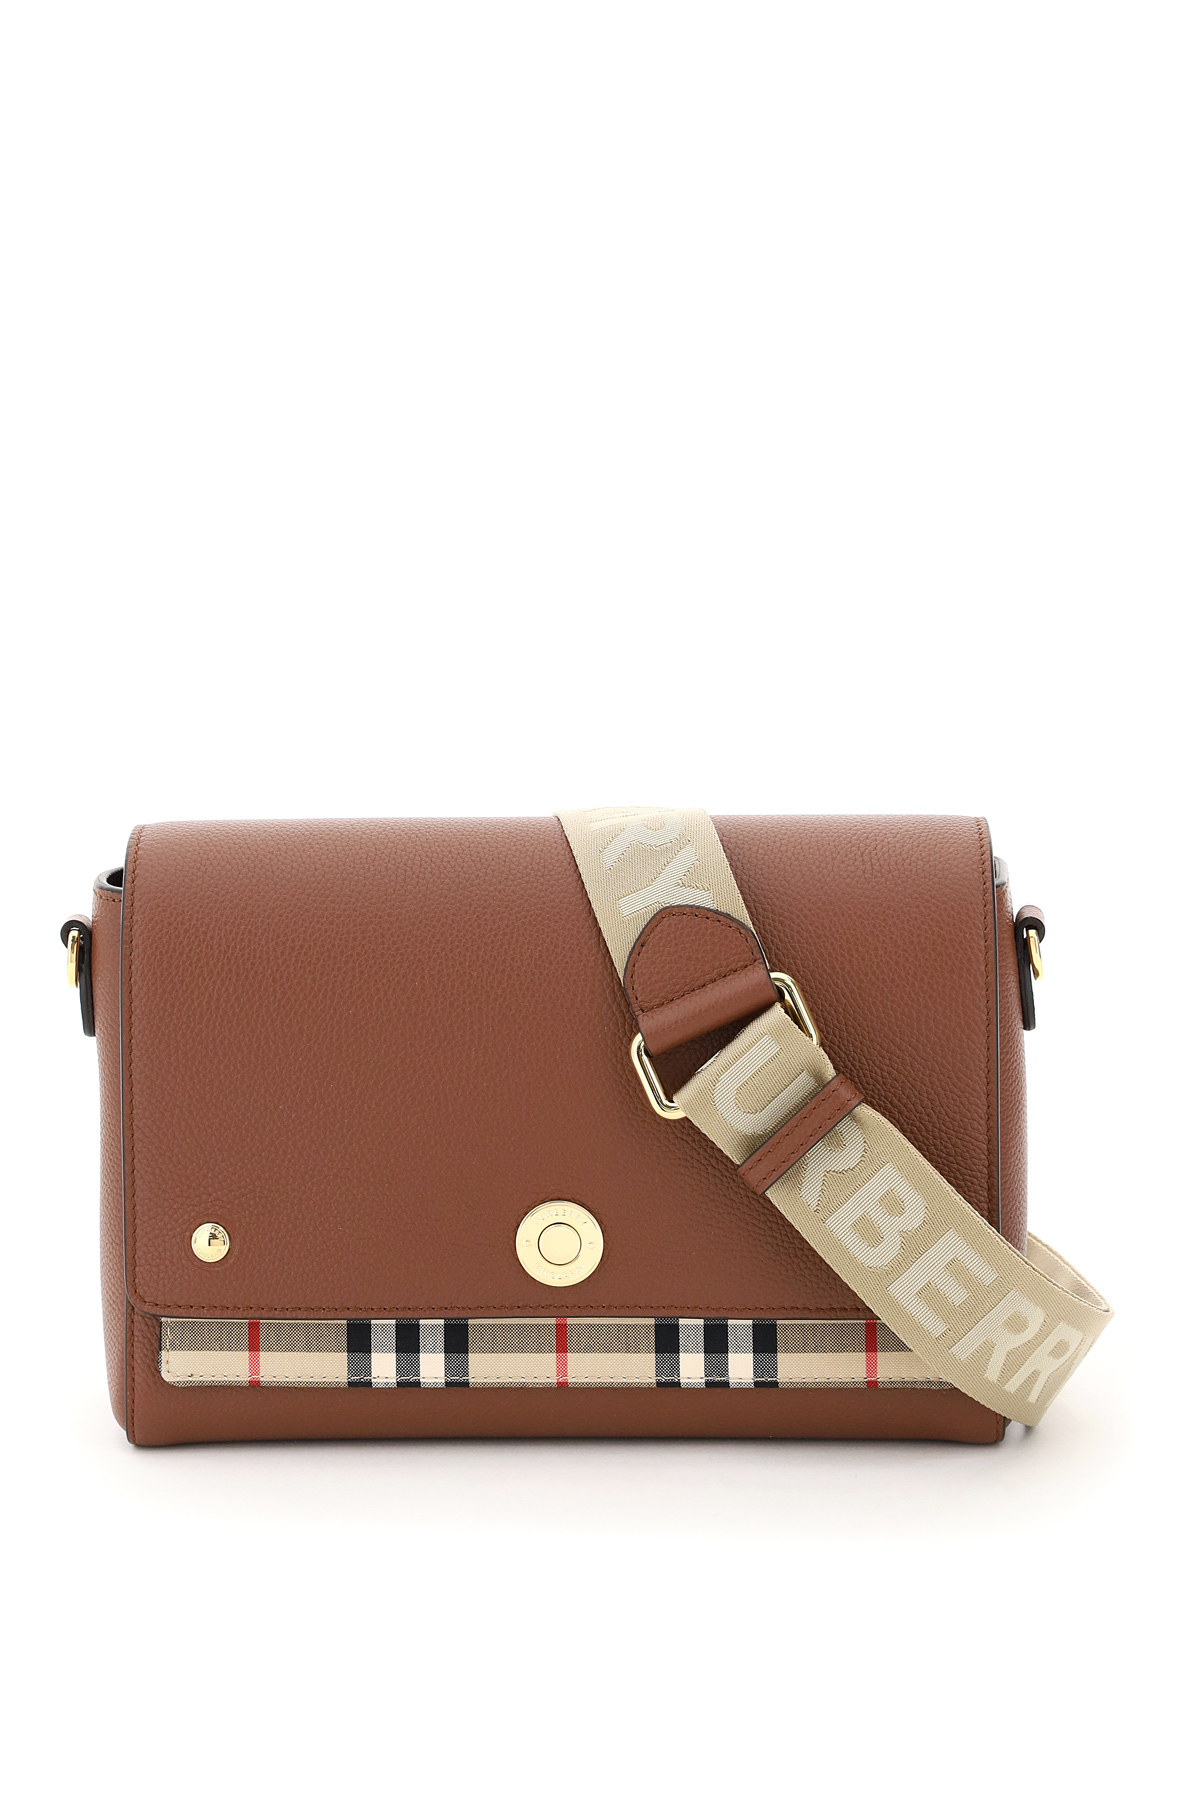 BURBERRY NOTE MEDIUM SHOULDER BAG